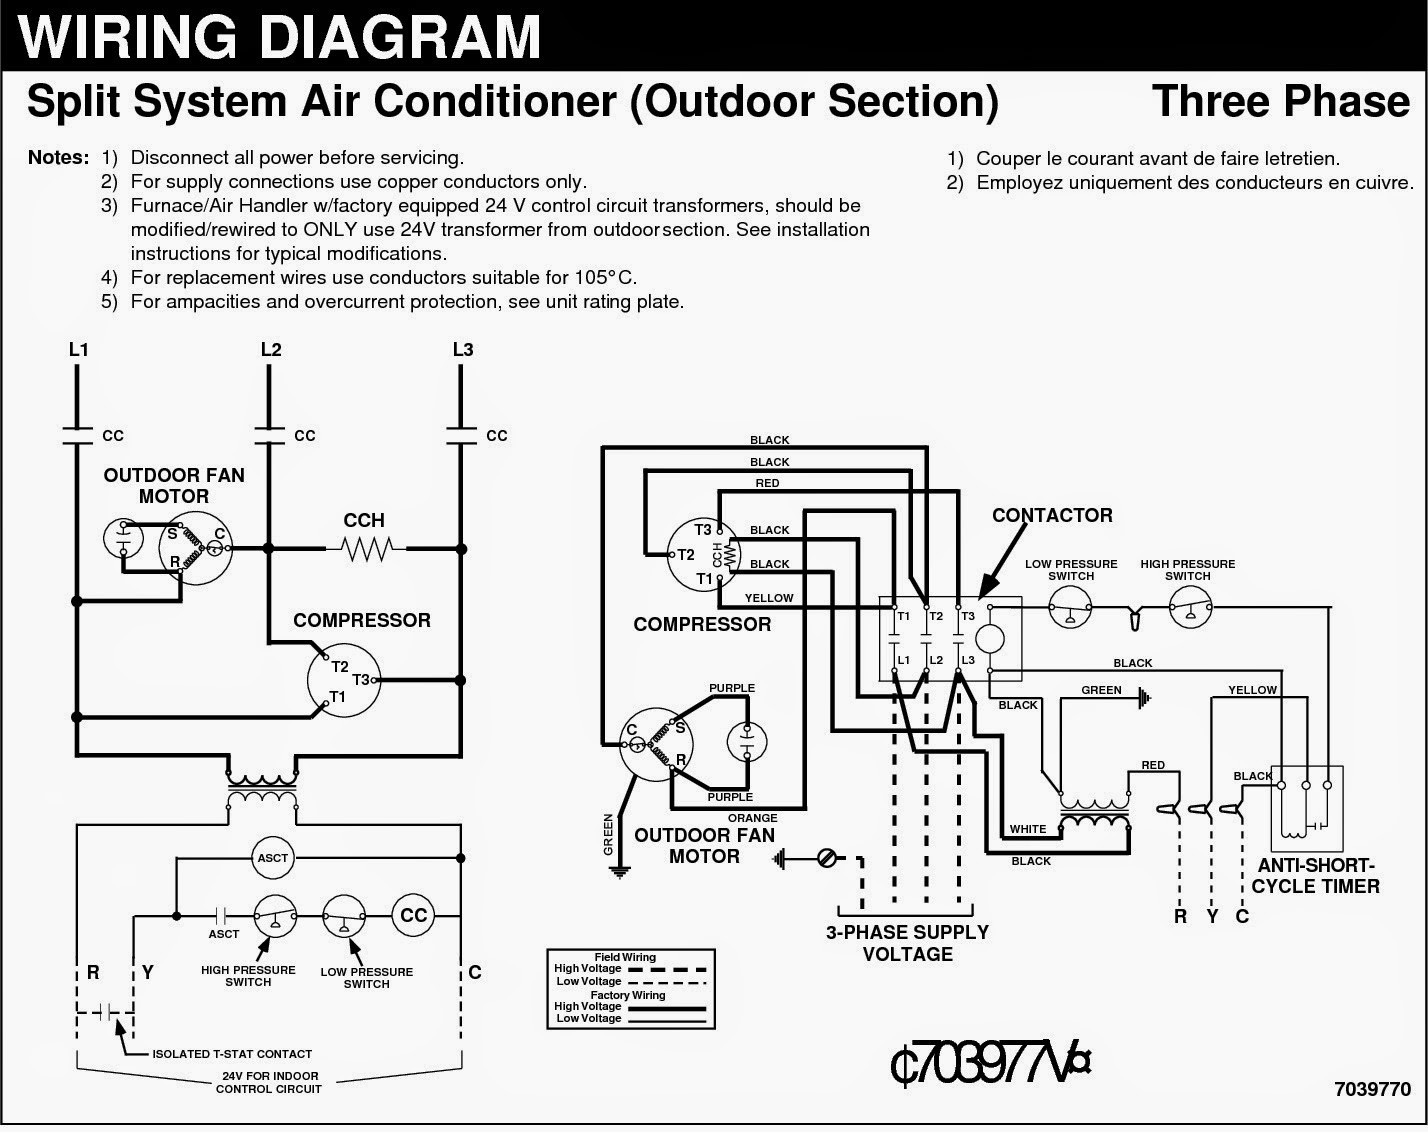 Electrical Wiring Diagrams For Air Conditioning Systems Part Two Home Books Fig13 Split Cooling Units Three Phase Diagram